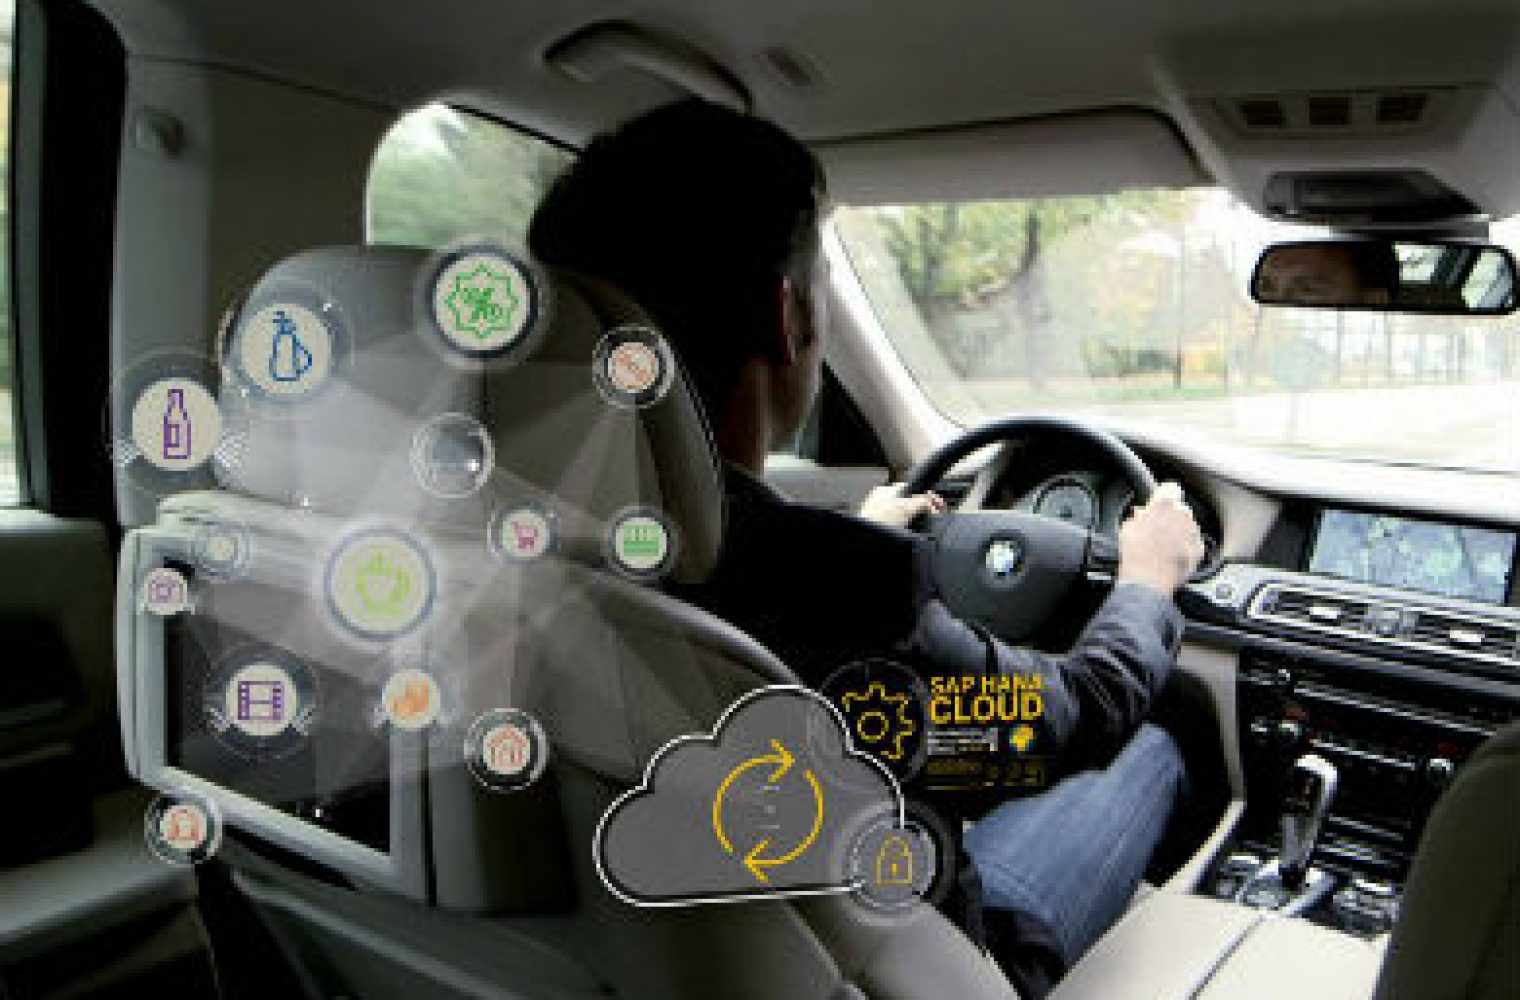 Vehicle Manufacturers In The Uk Uk Drivers Speak Out On Connected Car Data Garagewire